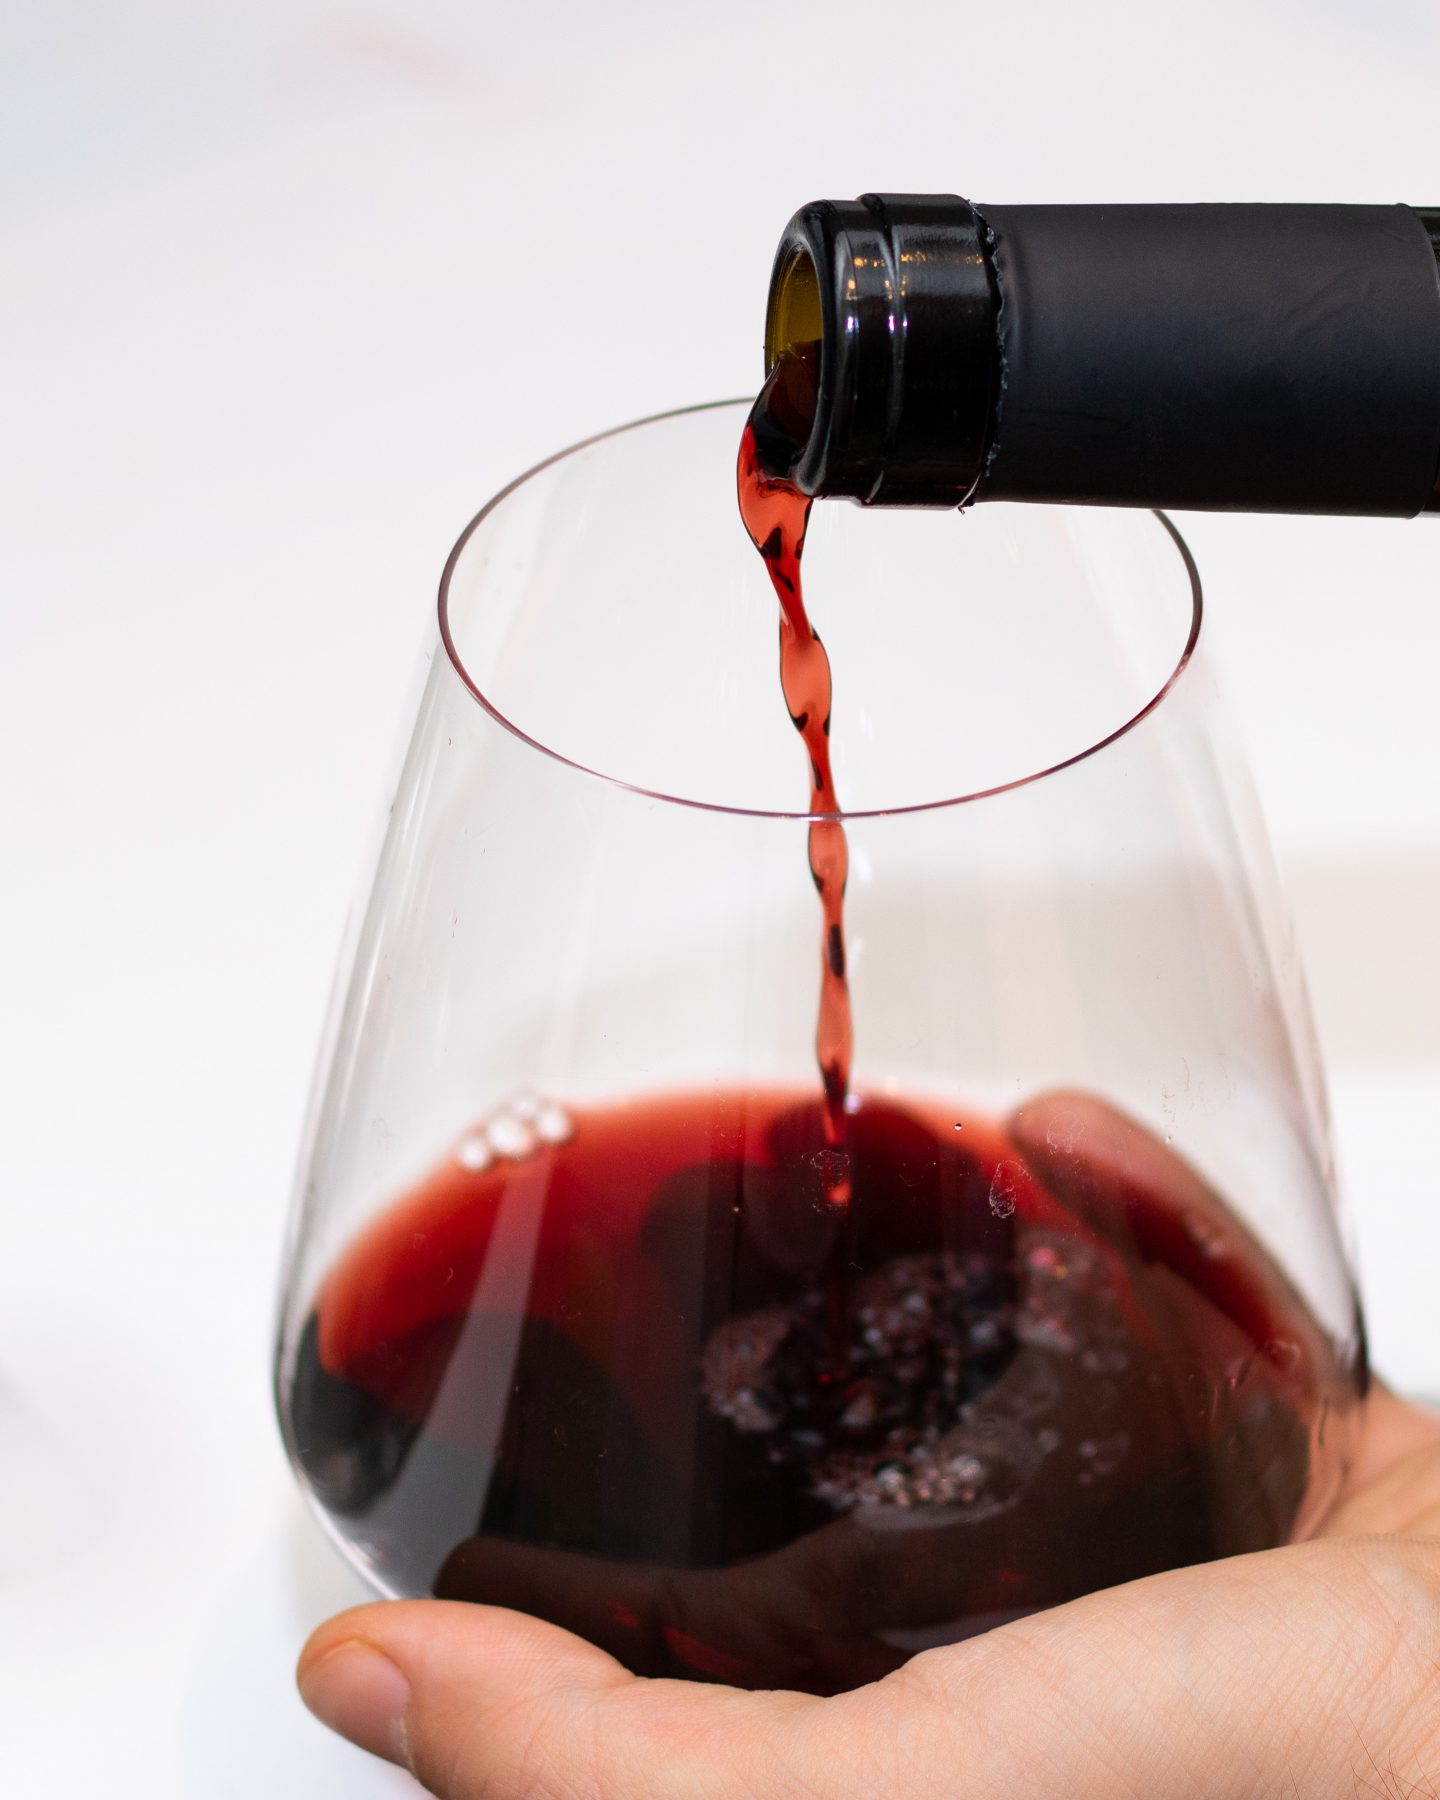 lockdown wine where to buy online: red wine being poured into a glass